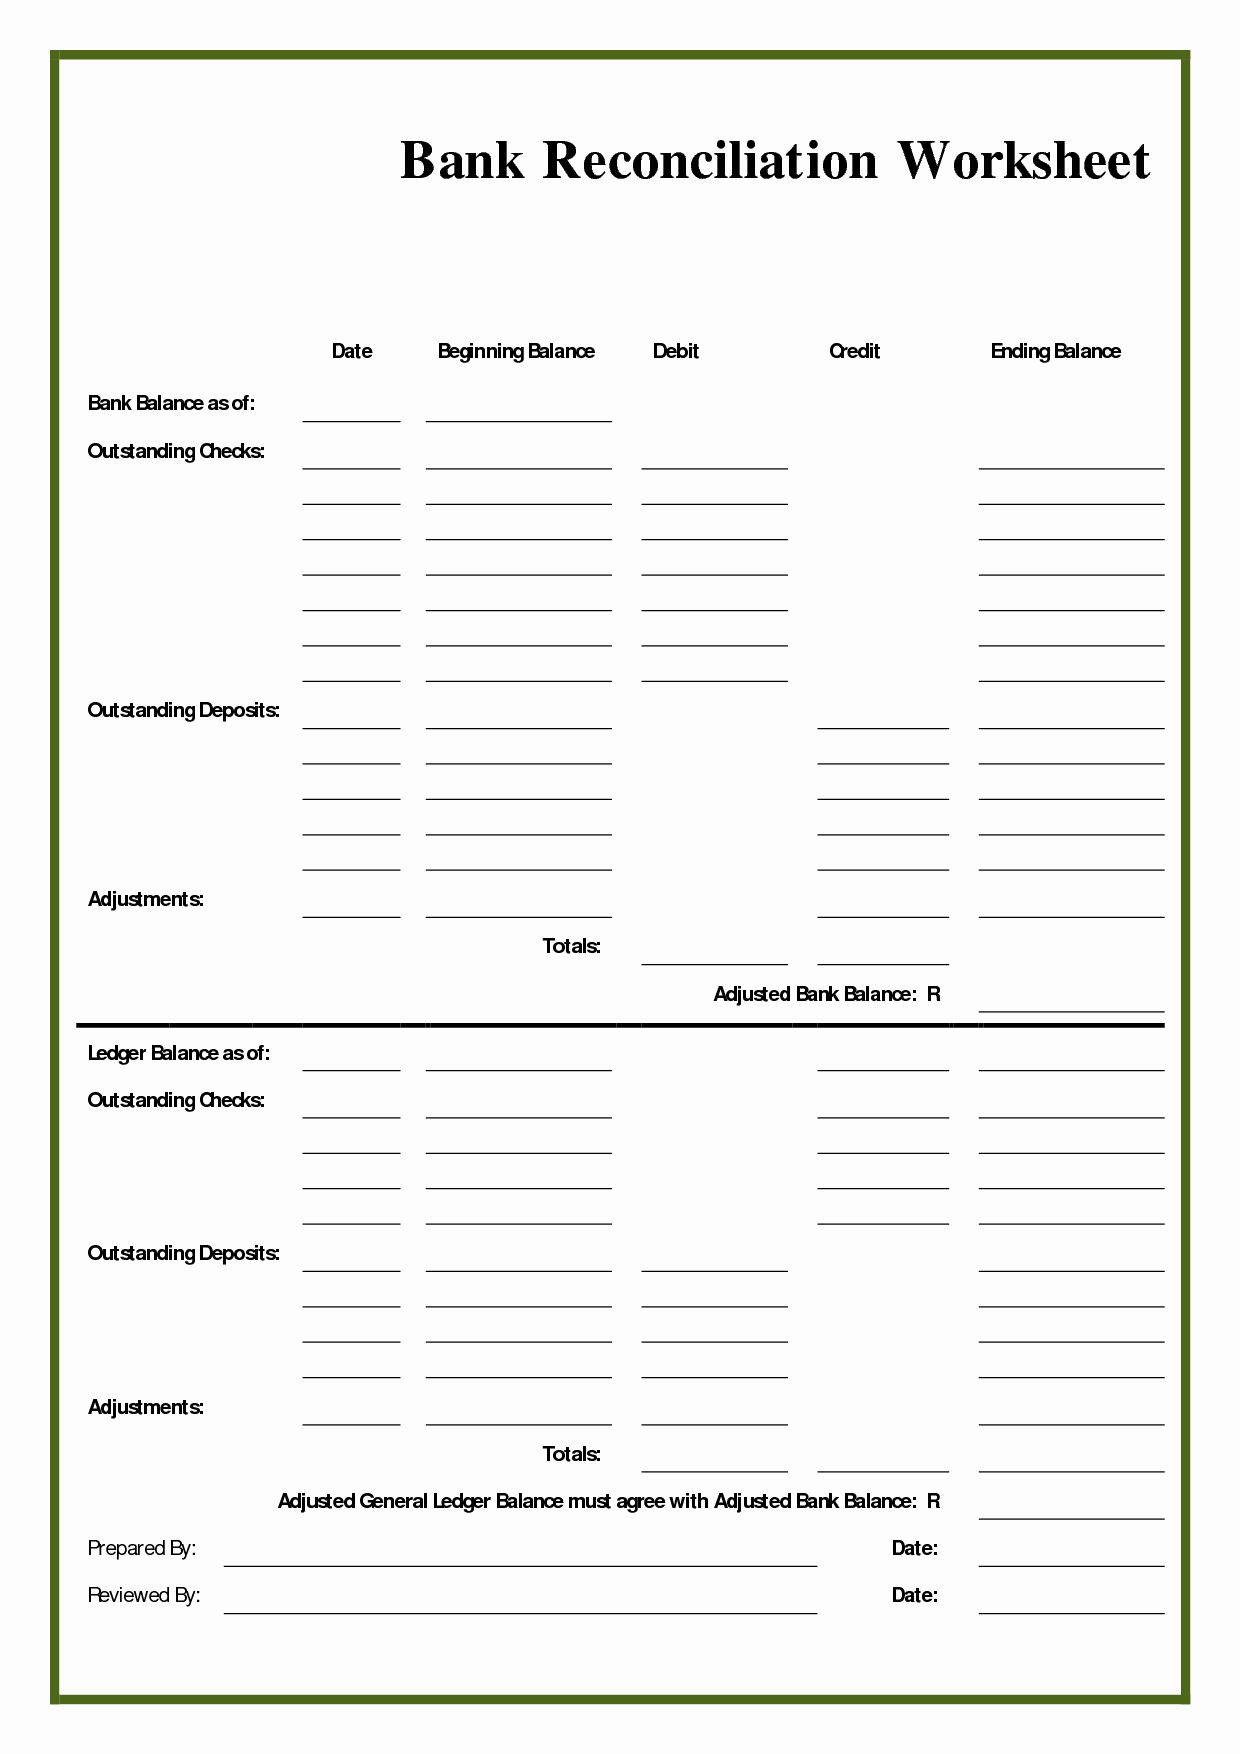 Bank Statement Reconciliation Template Inspirational Blank